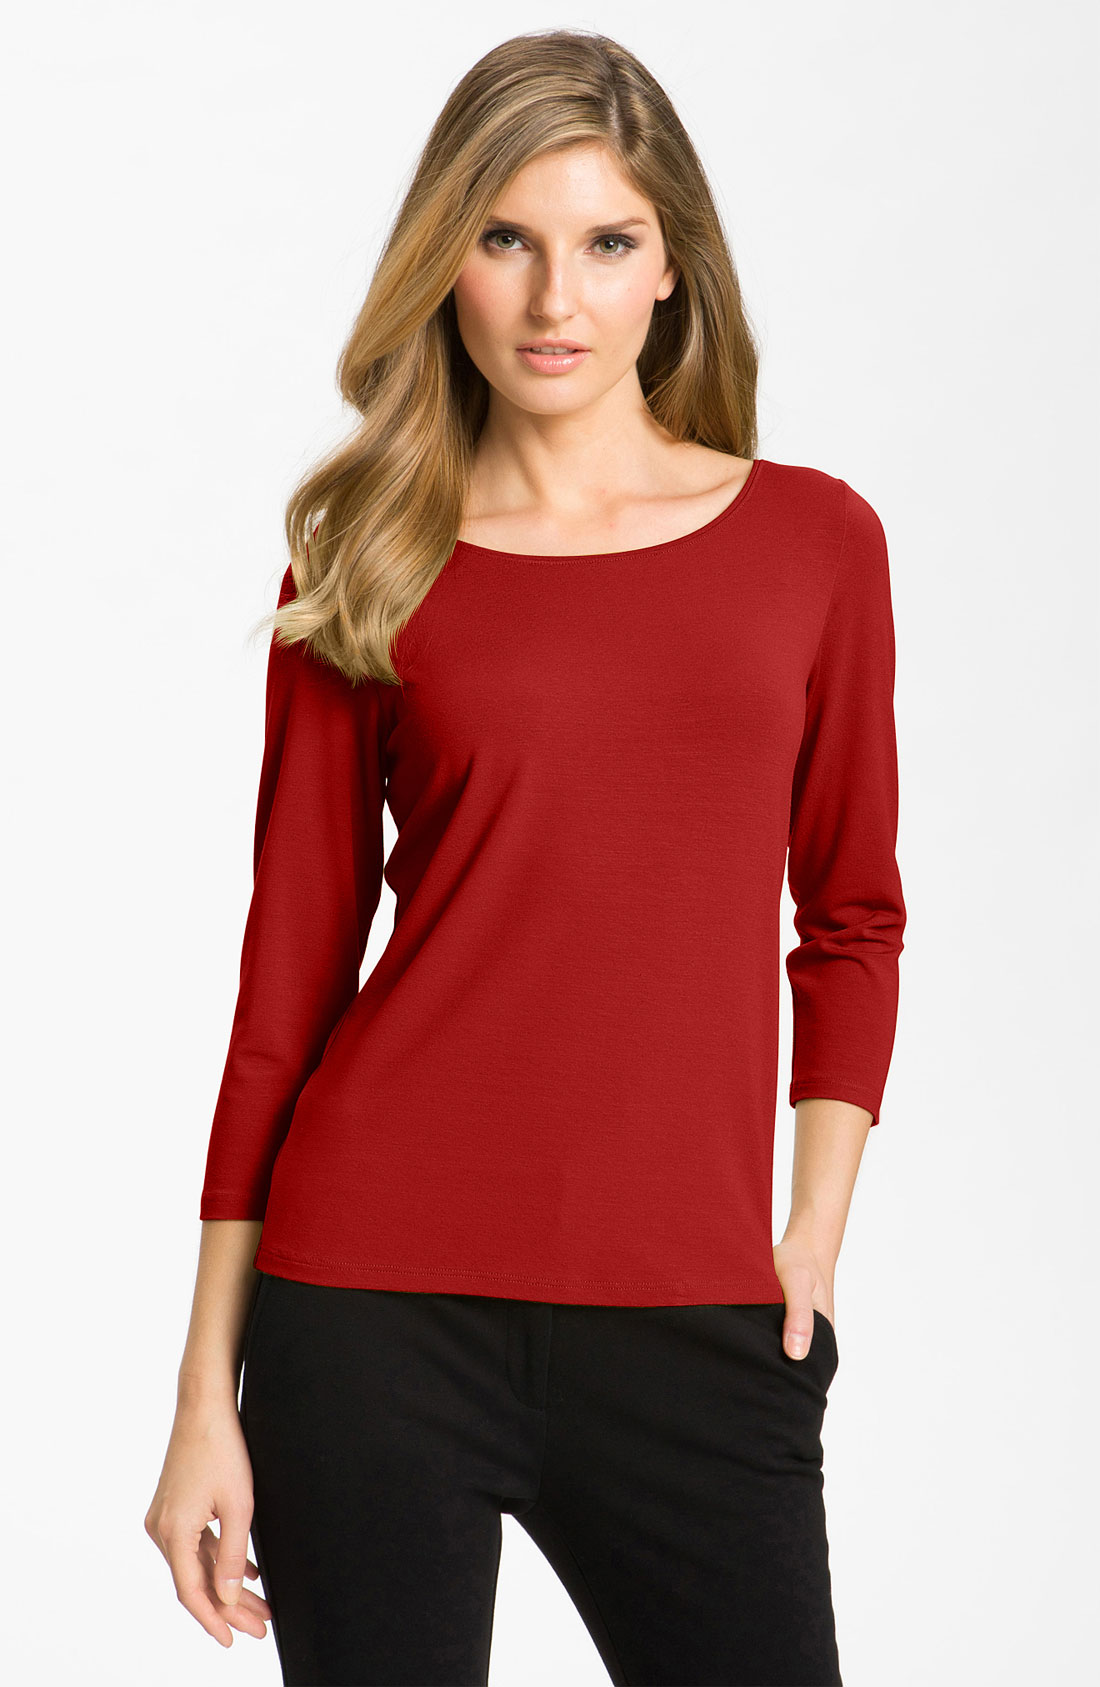 Eileen Fisher Ballet Neck Tee In Red Tomato Lyst